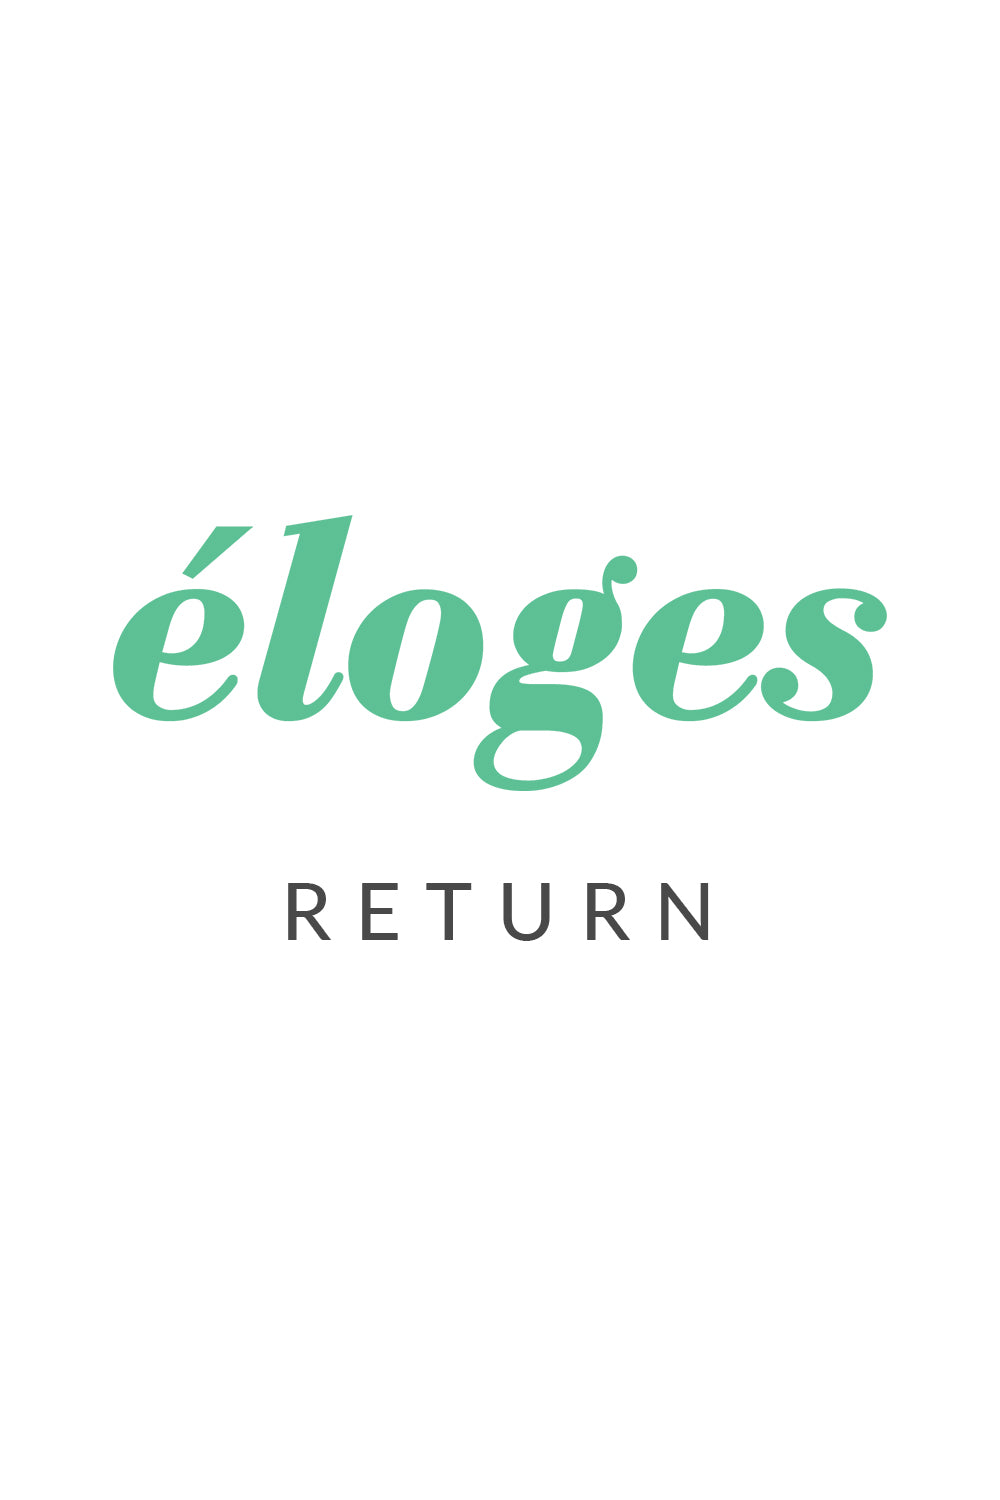 Eloges Return